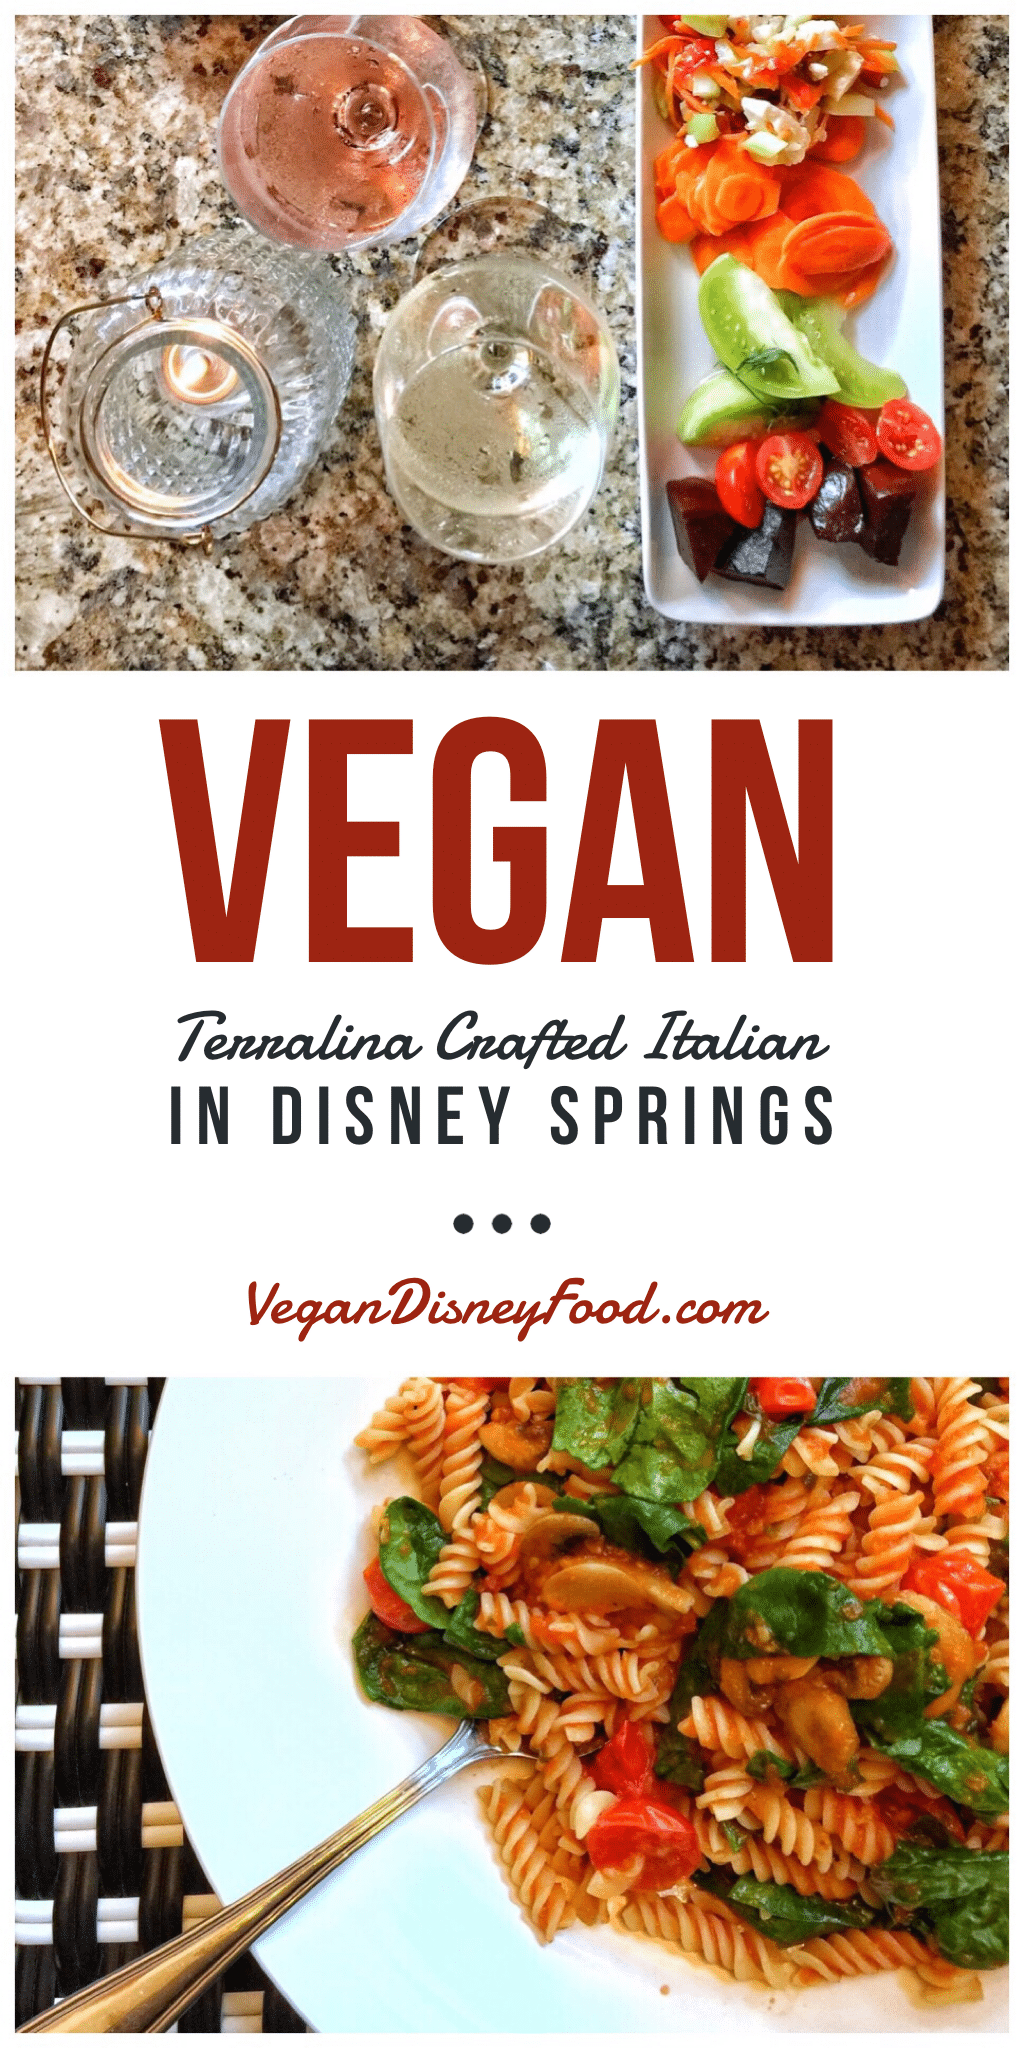 Vegan Food Review: Terralina Crafted Italian in Disney Springs at Walt Disney World